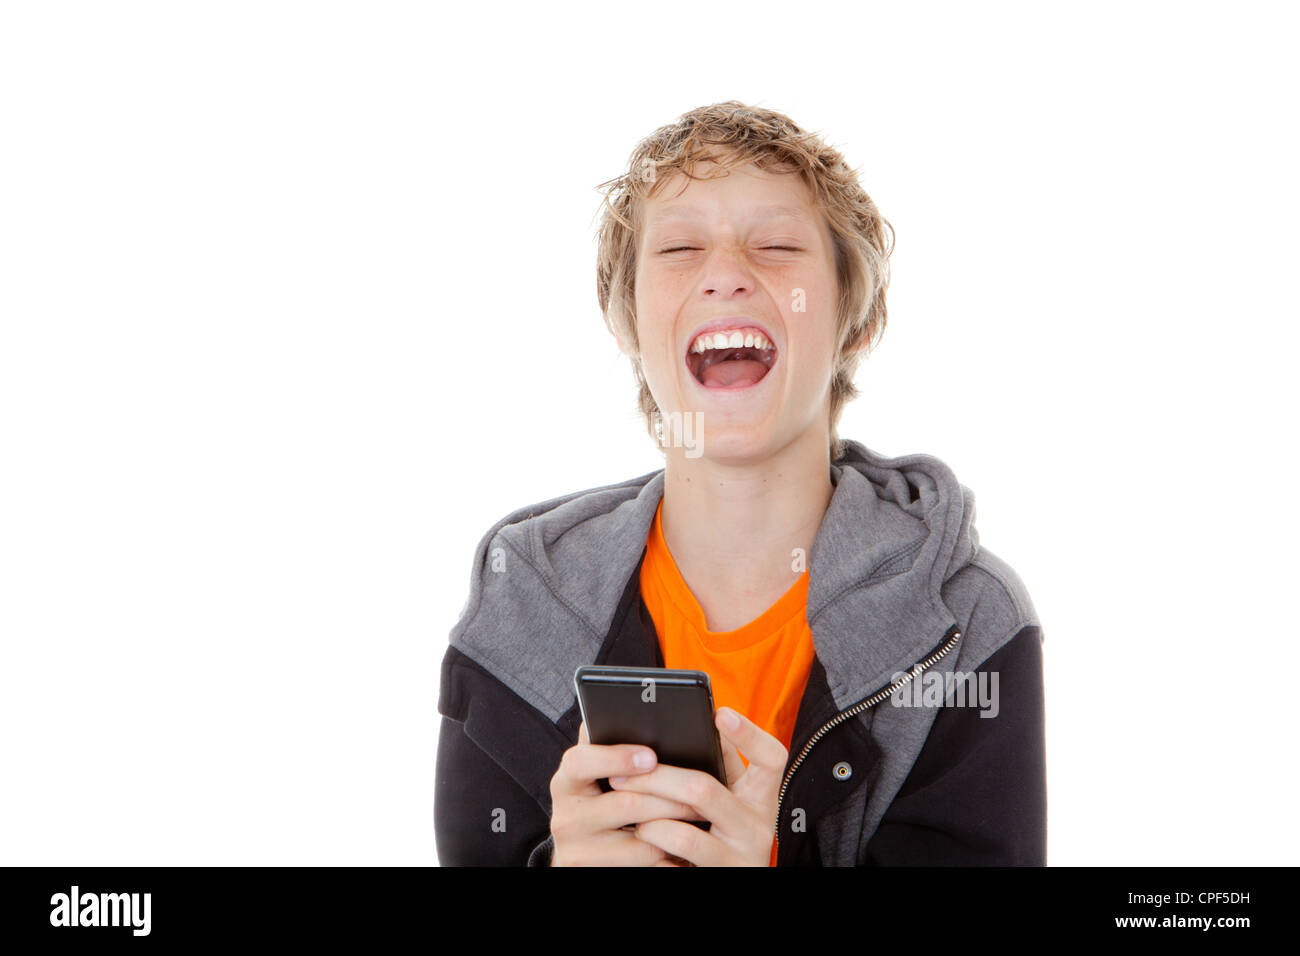 child laughing reading message on cell or mobile phone - Stock Image